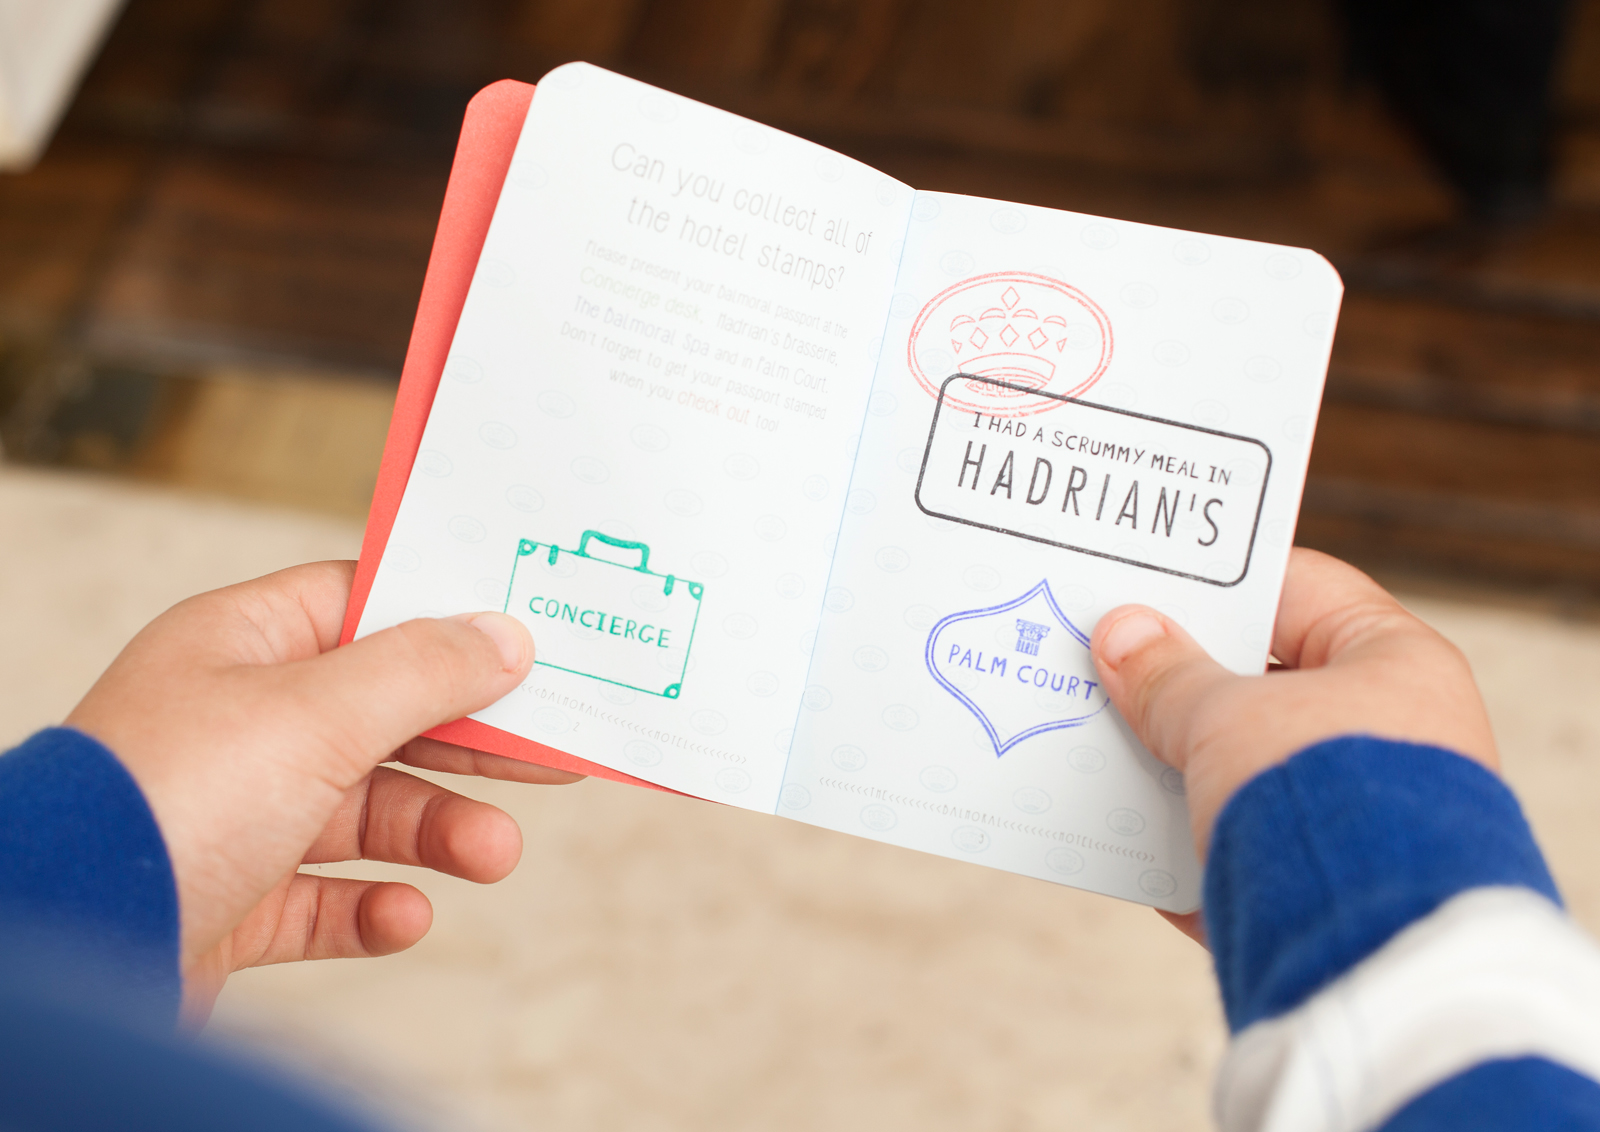 The kids' passport, and Sean's latest stamp from Hadrian's Brasserie